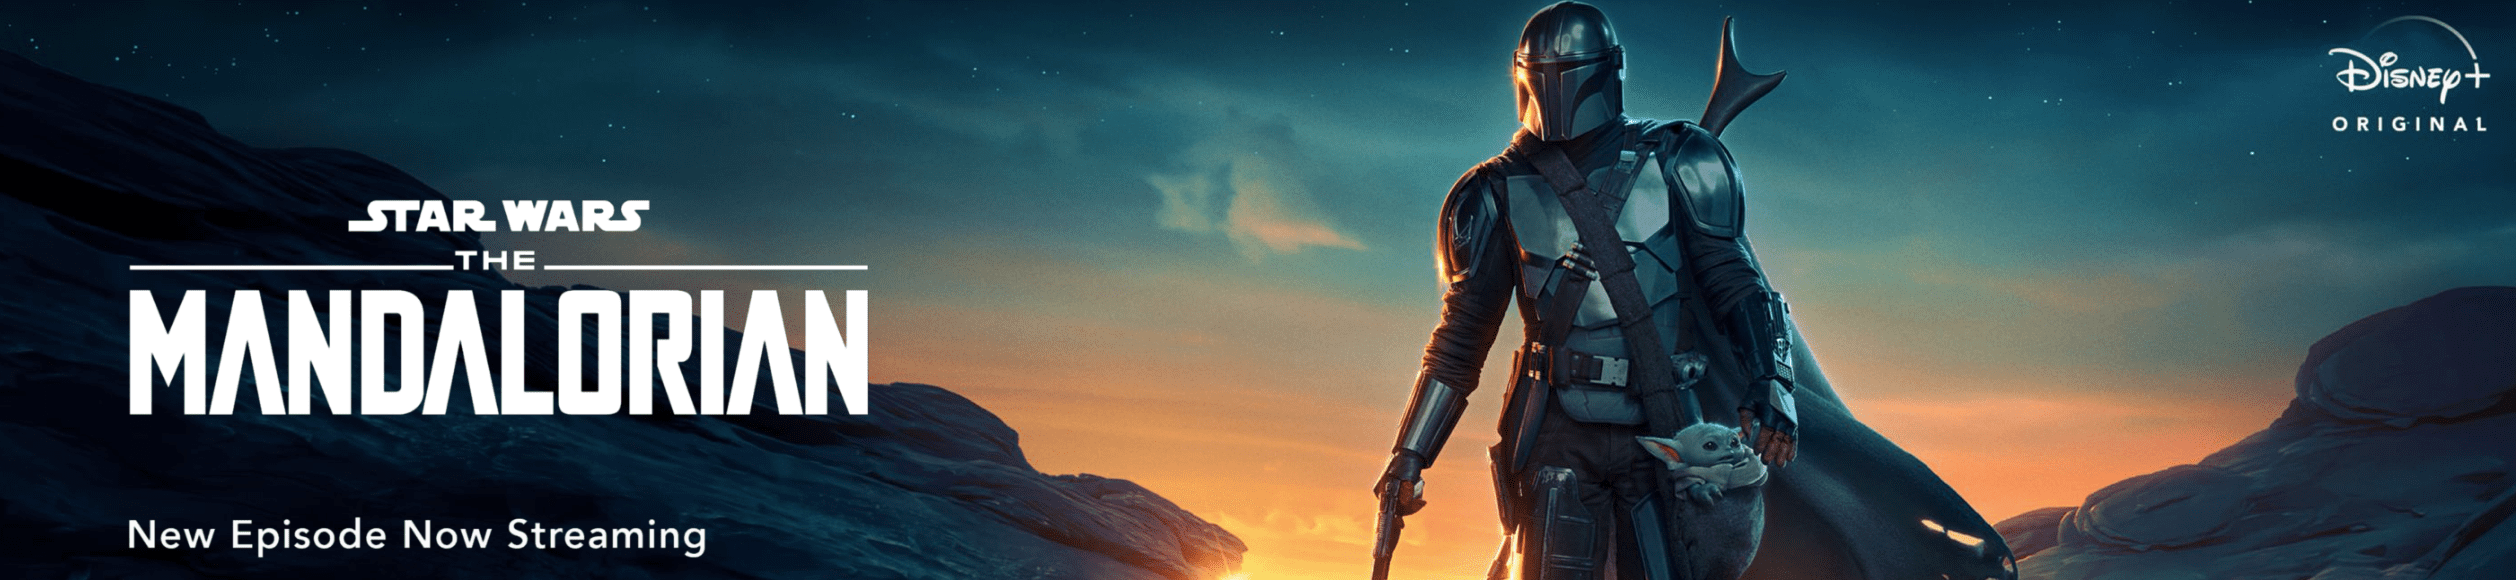 What Time Does Mandalorian Season 2 Come Out on Disney Plus?